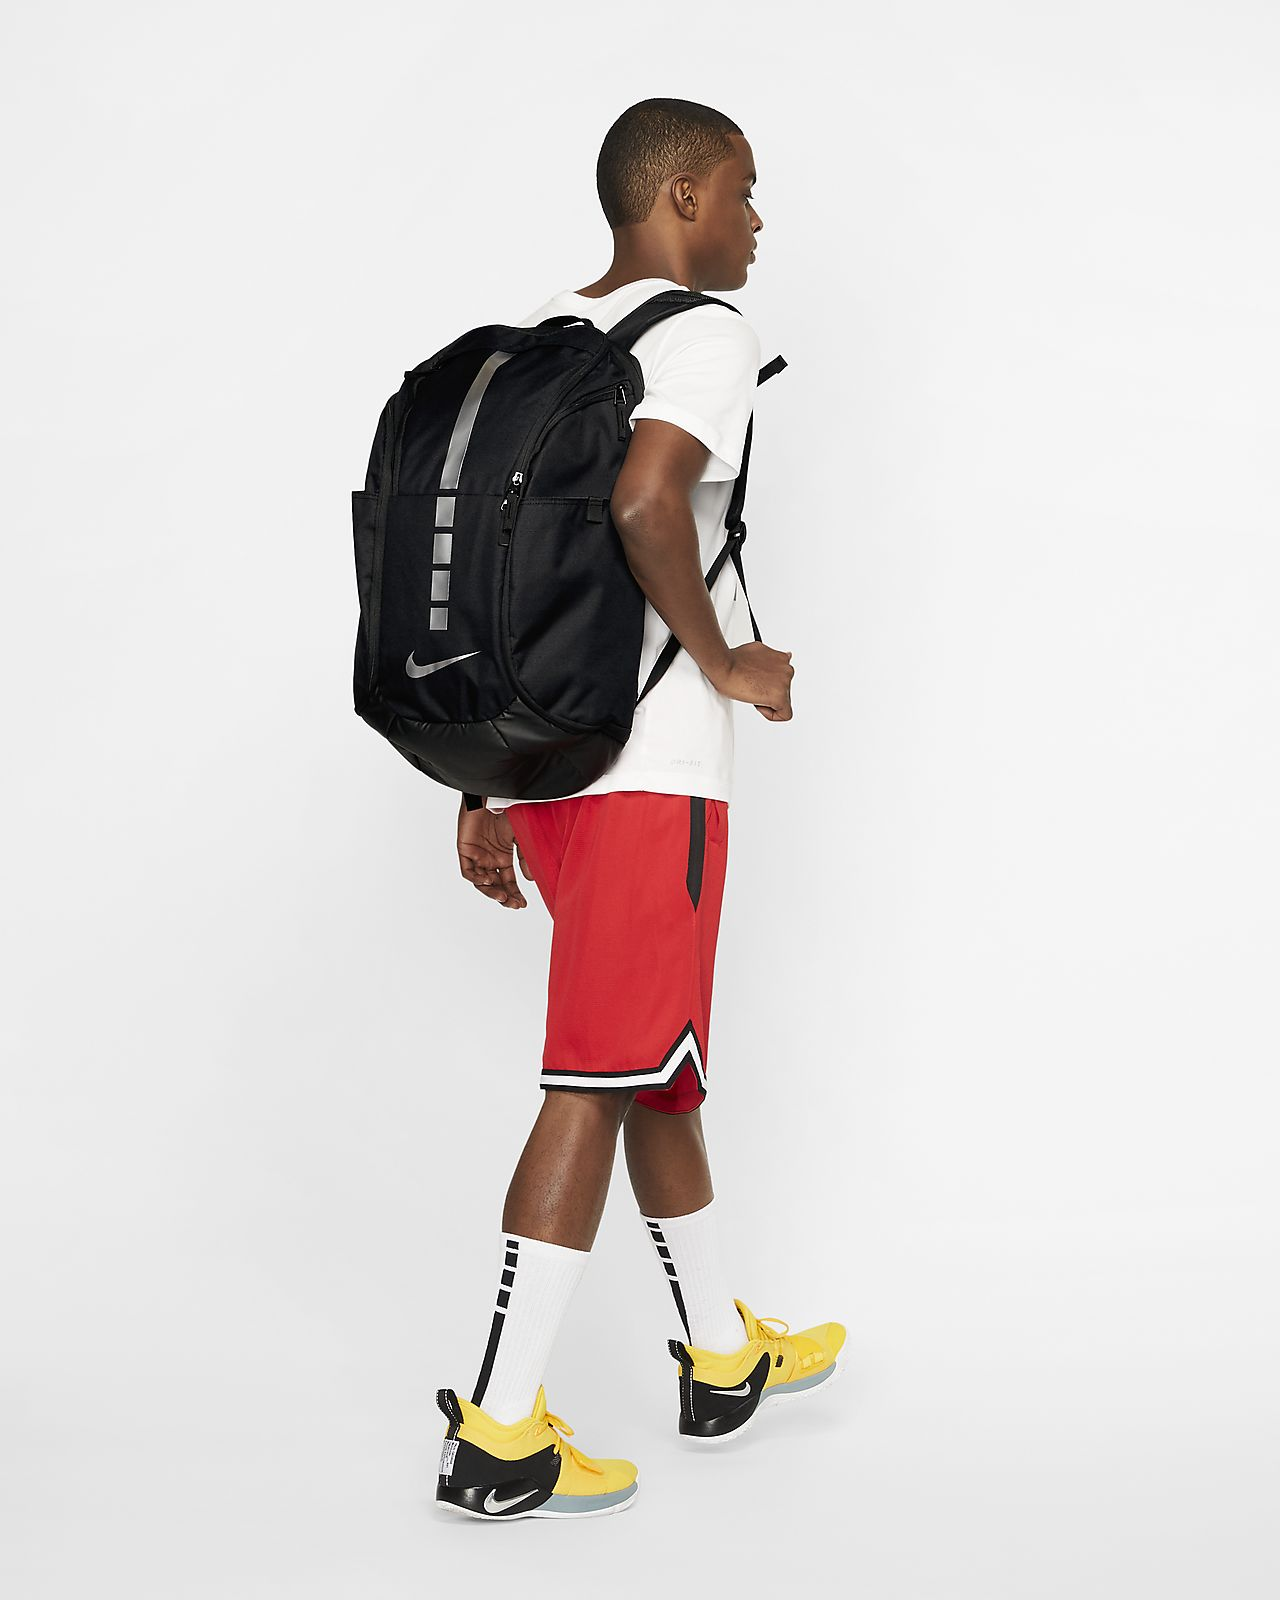 Hoop City PH NIKE HOOP ELITE MAX AIR backpack </p>                     </div> 		  <!--bof Product URL --> 										<!--eof Product URL --> 					<!--bof Quantity Discounts table --> 											<!--eof Quantity Discounts table --> 				</div> 				                       			</dd> 						<dt class=